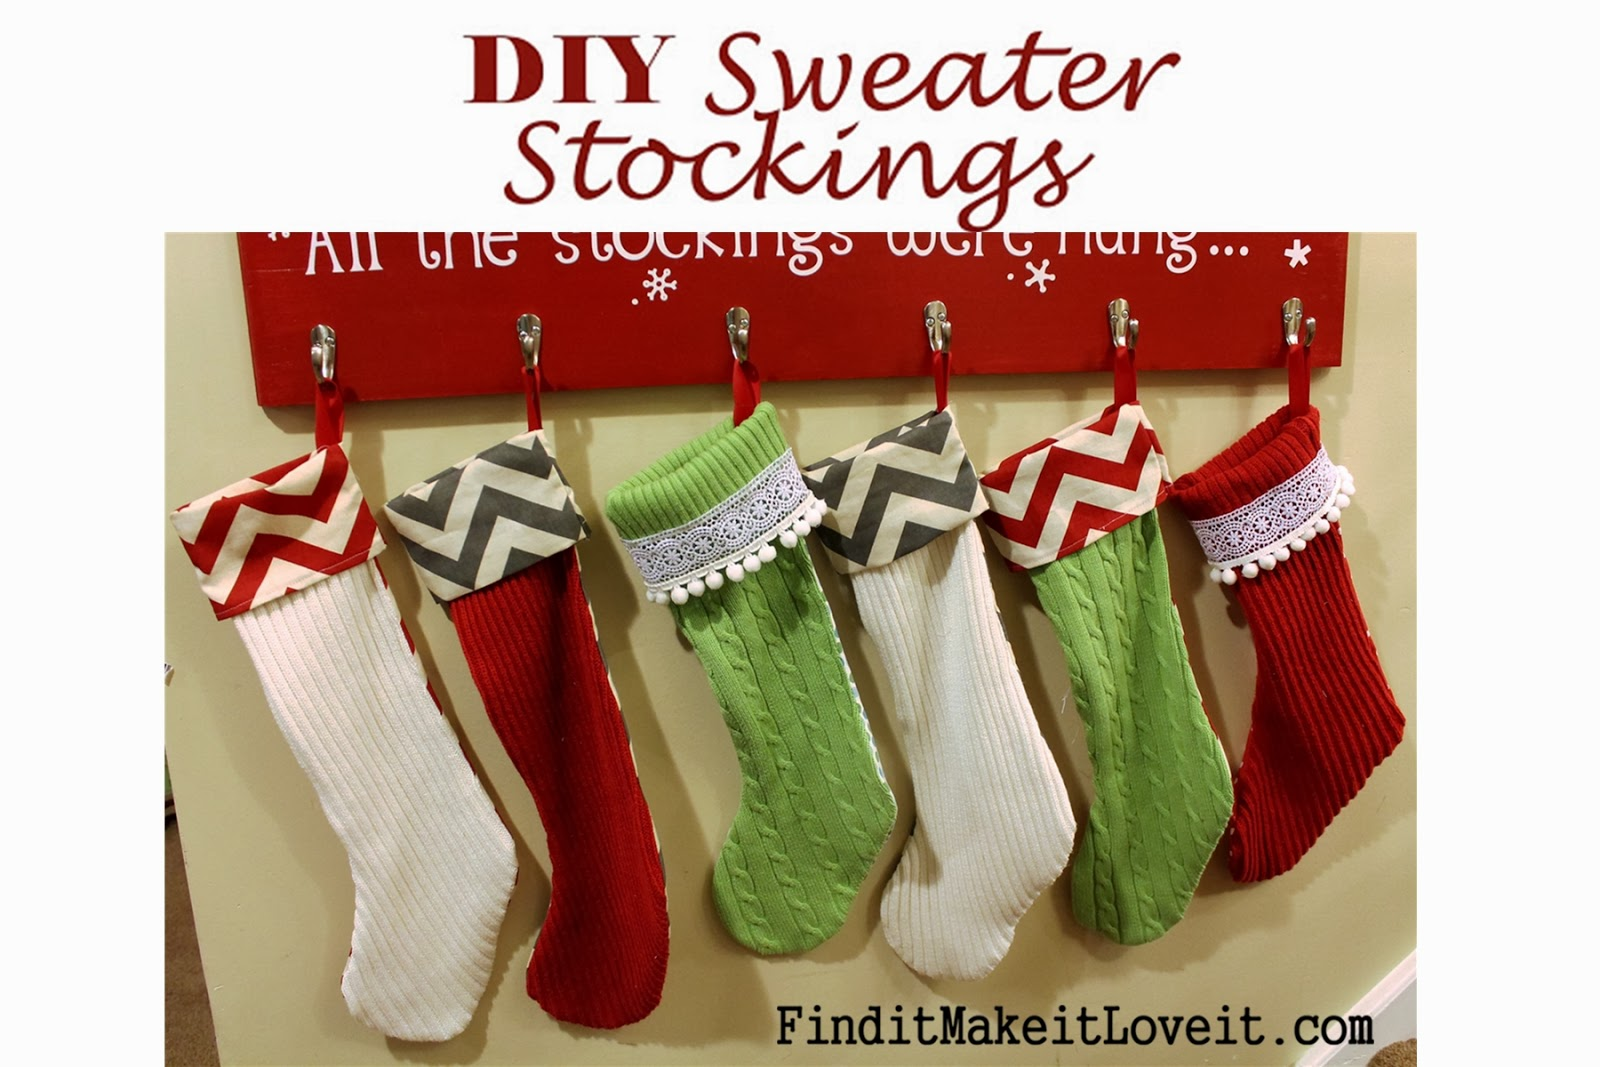 diy stockings from thrift store sweaters - Sweater Christmas Stockings